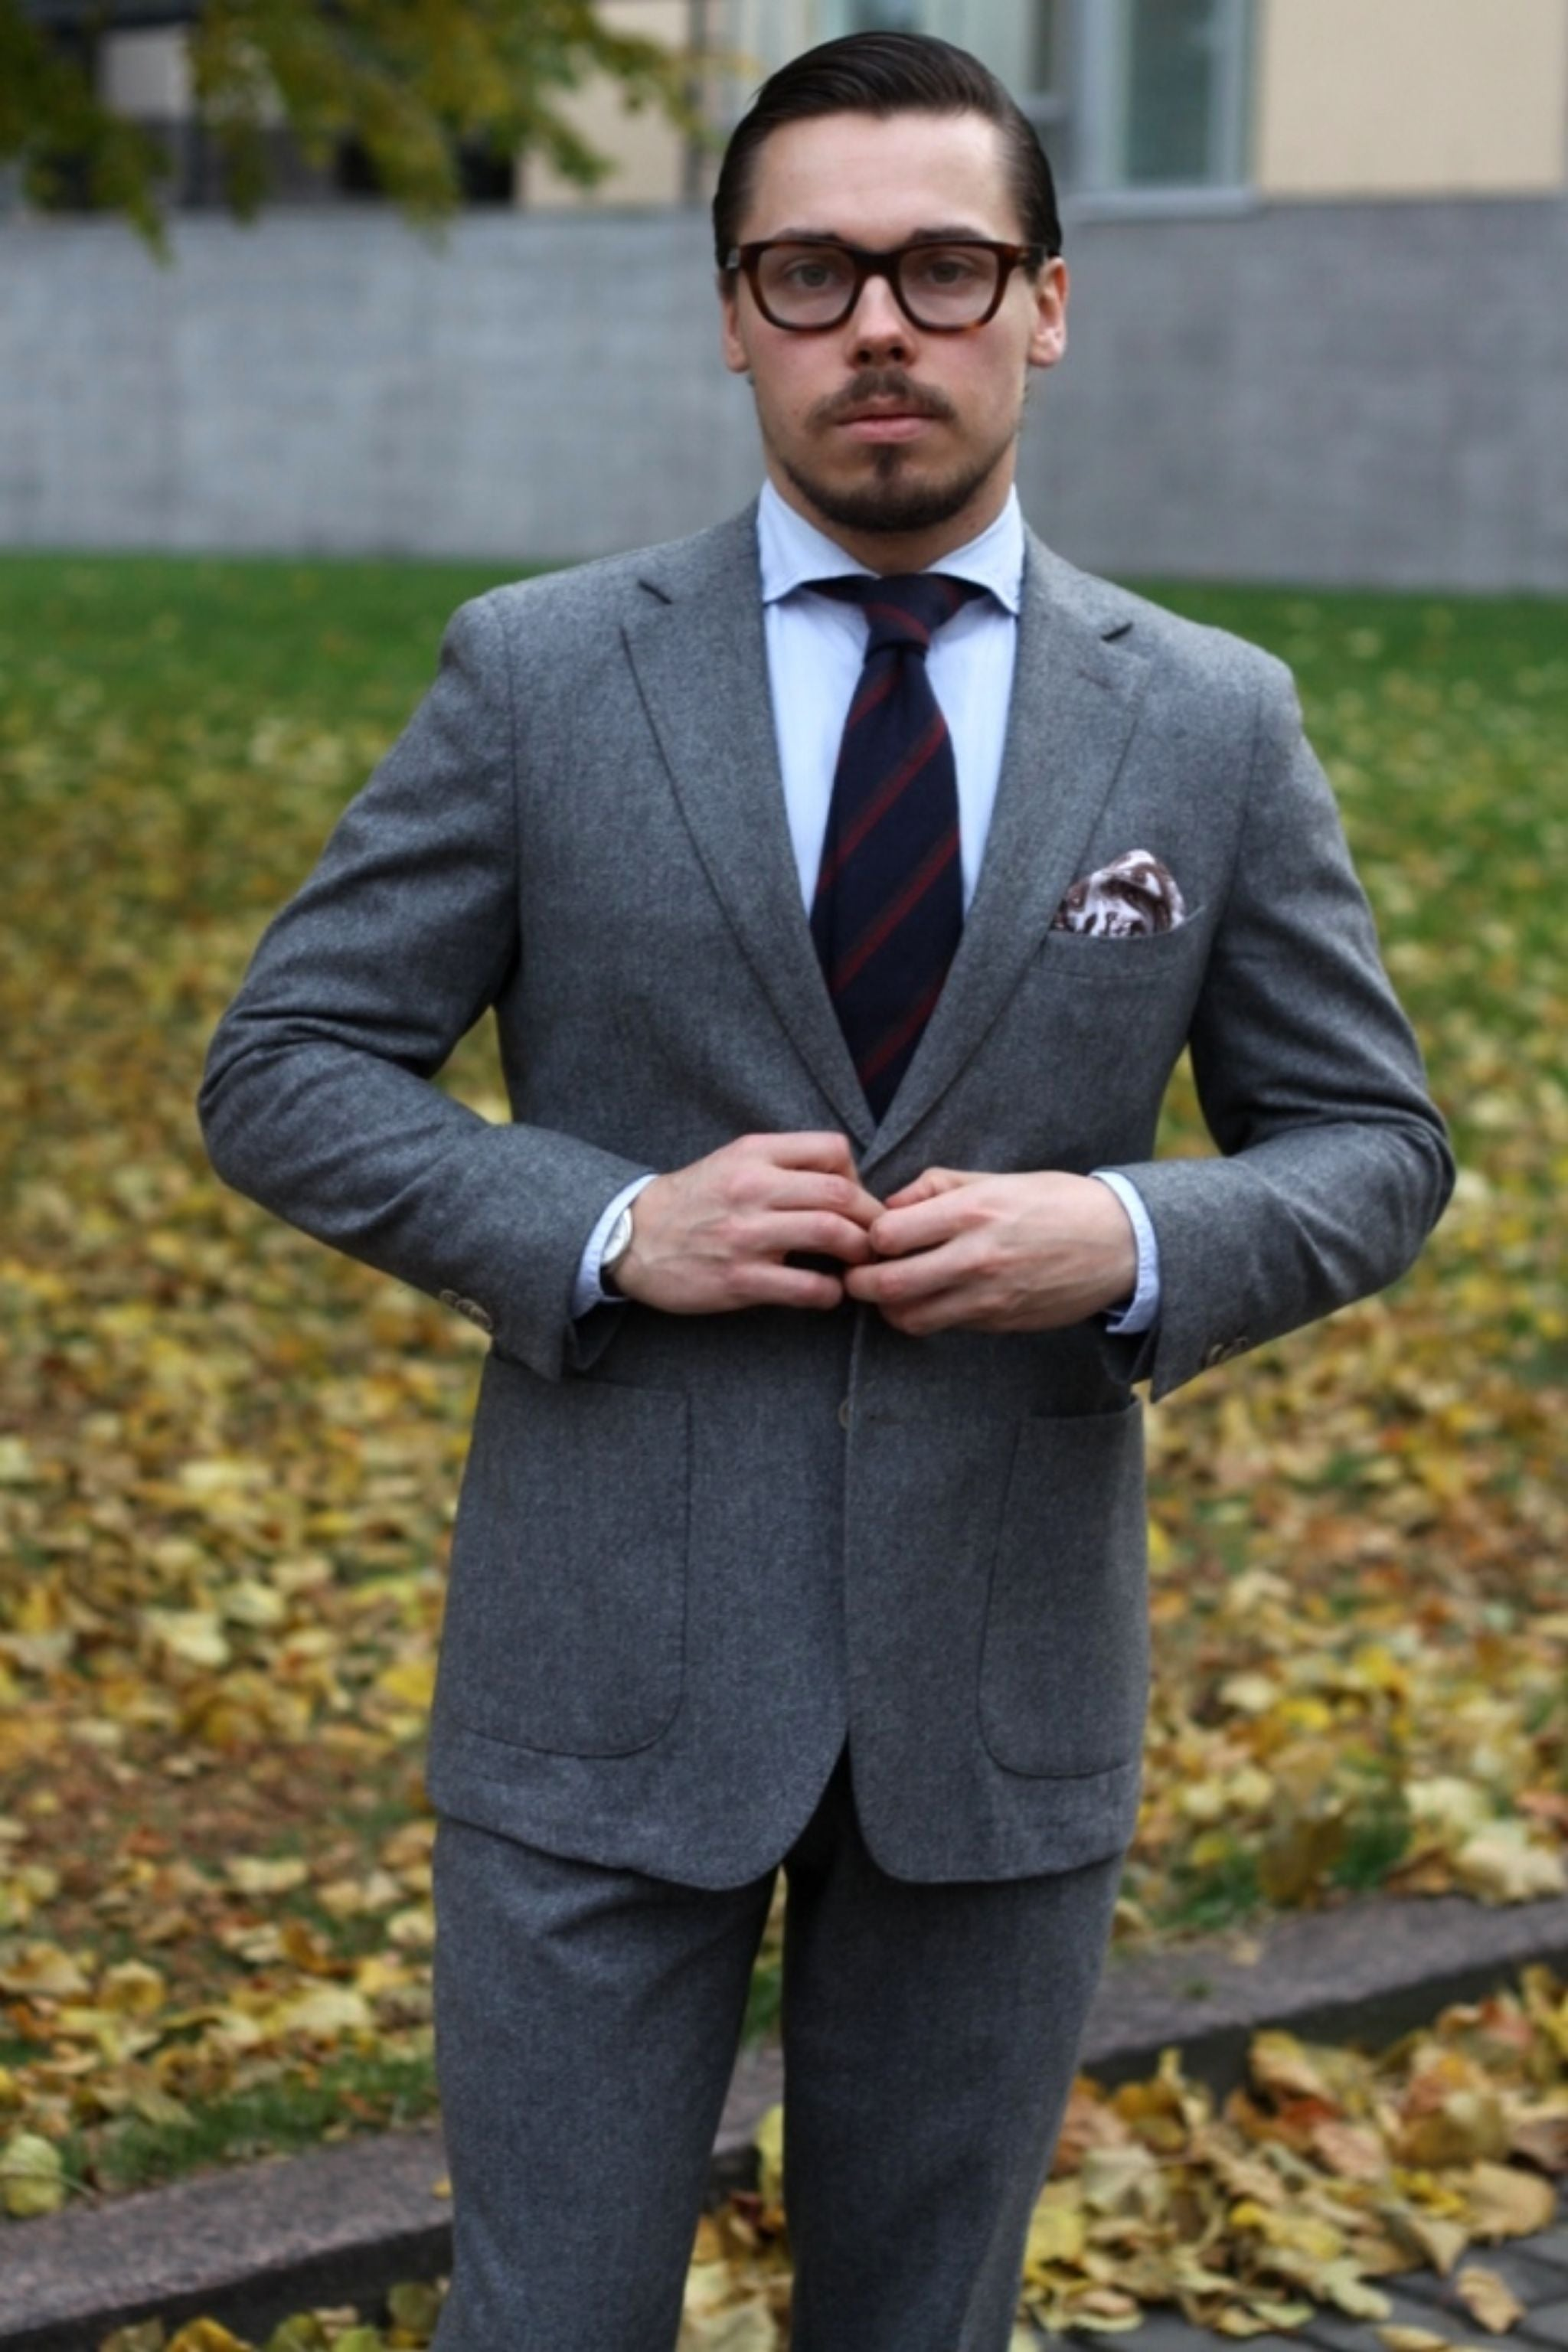 Suit with cashmere tie - mid-gray flannel and blue cashmere